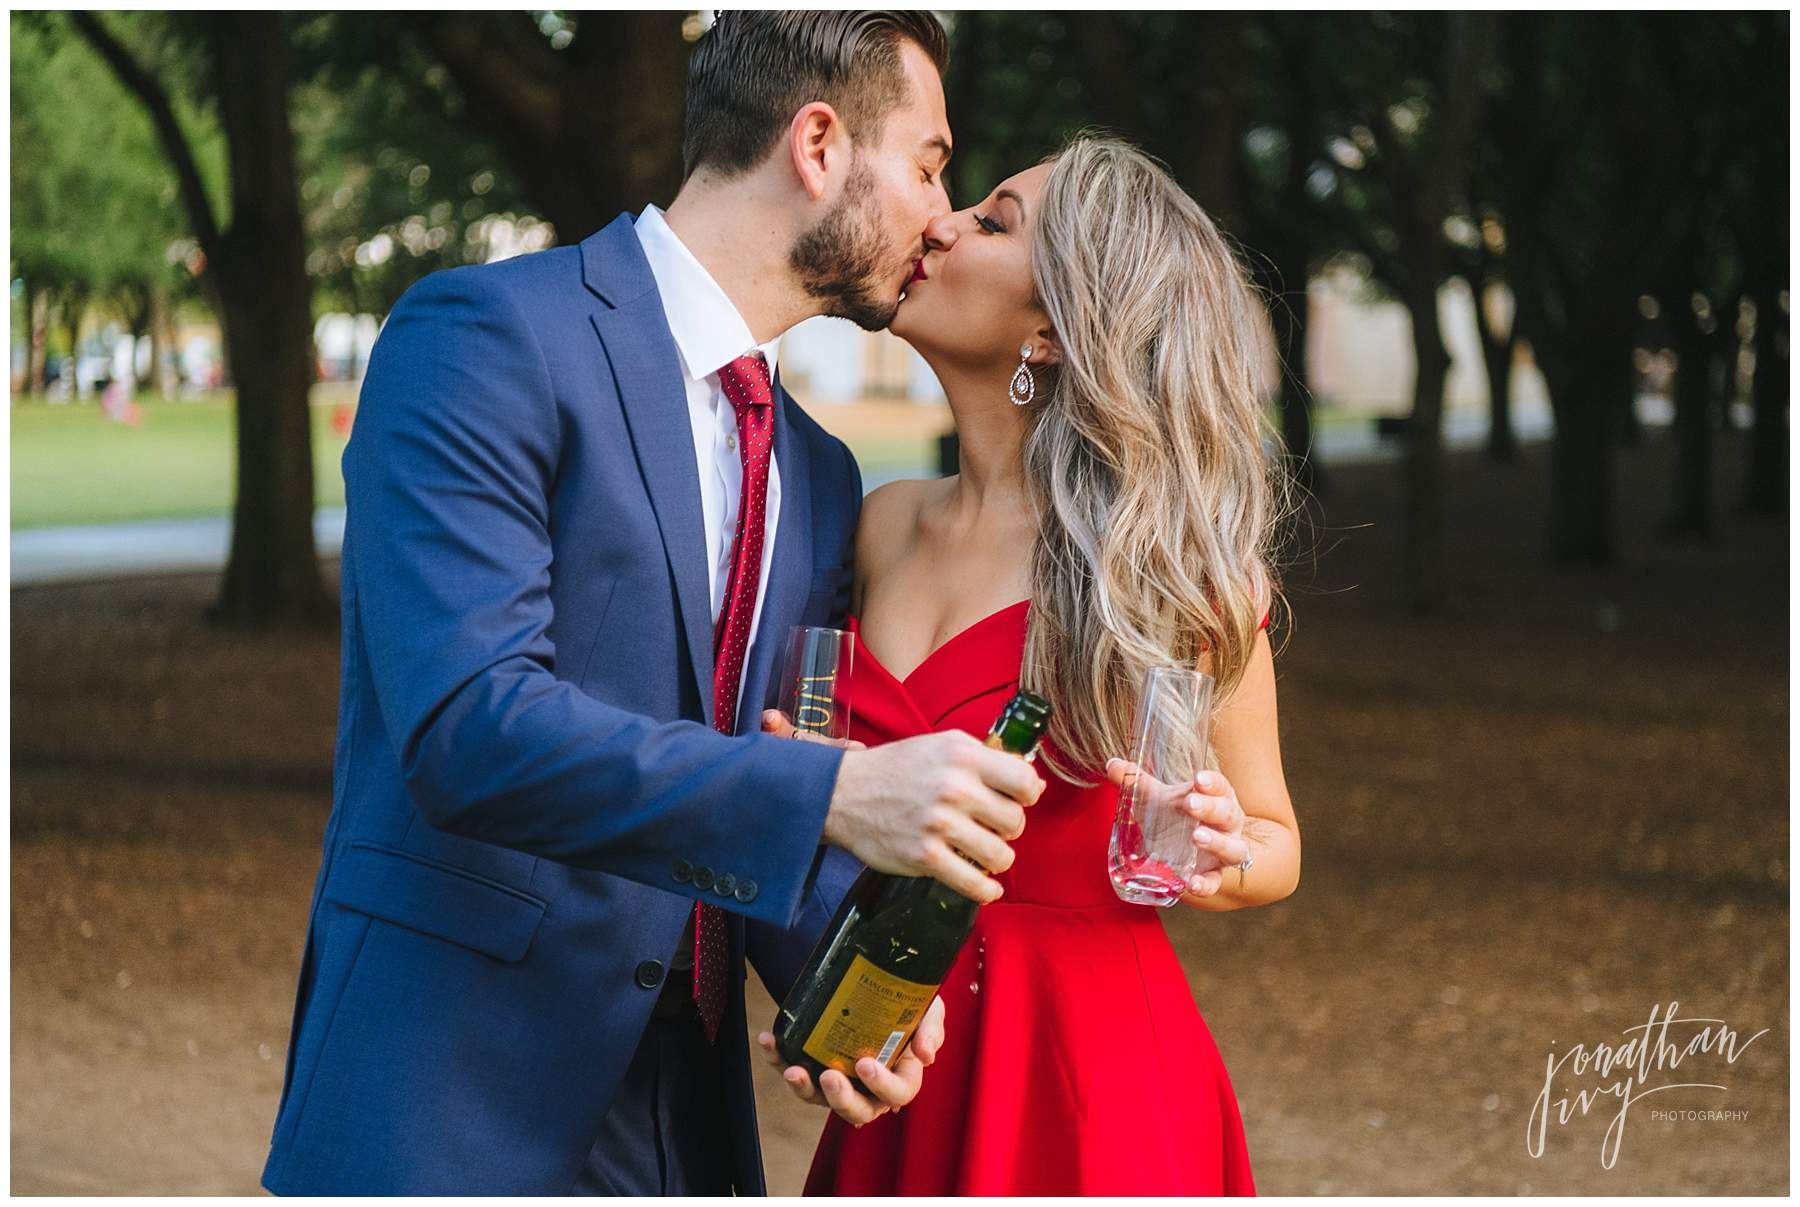 Engagement photos with champagne